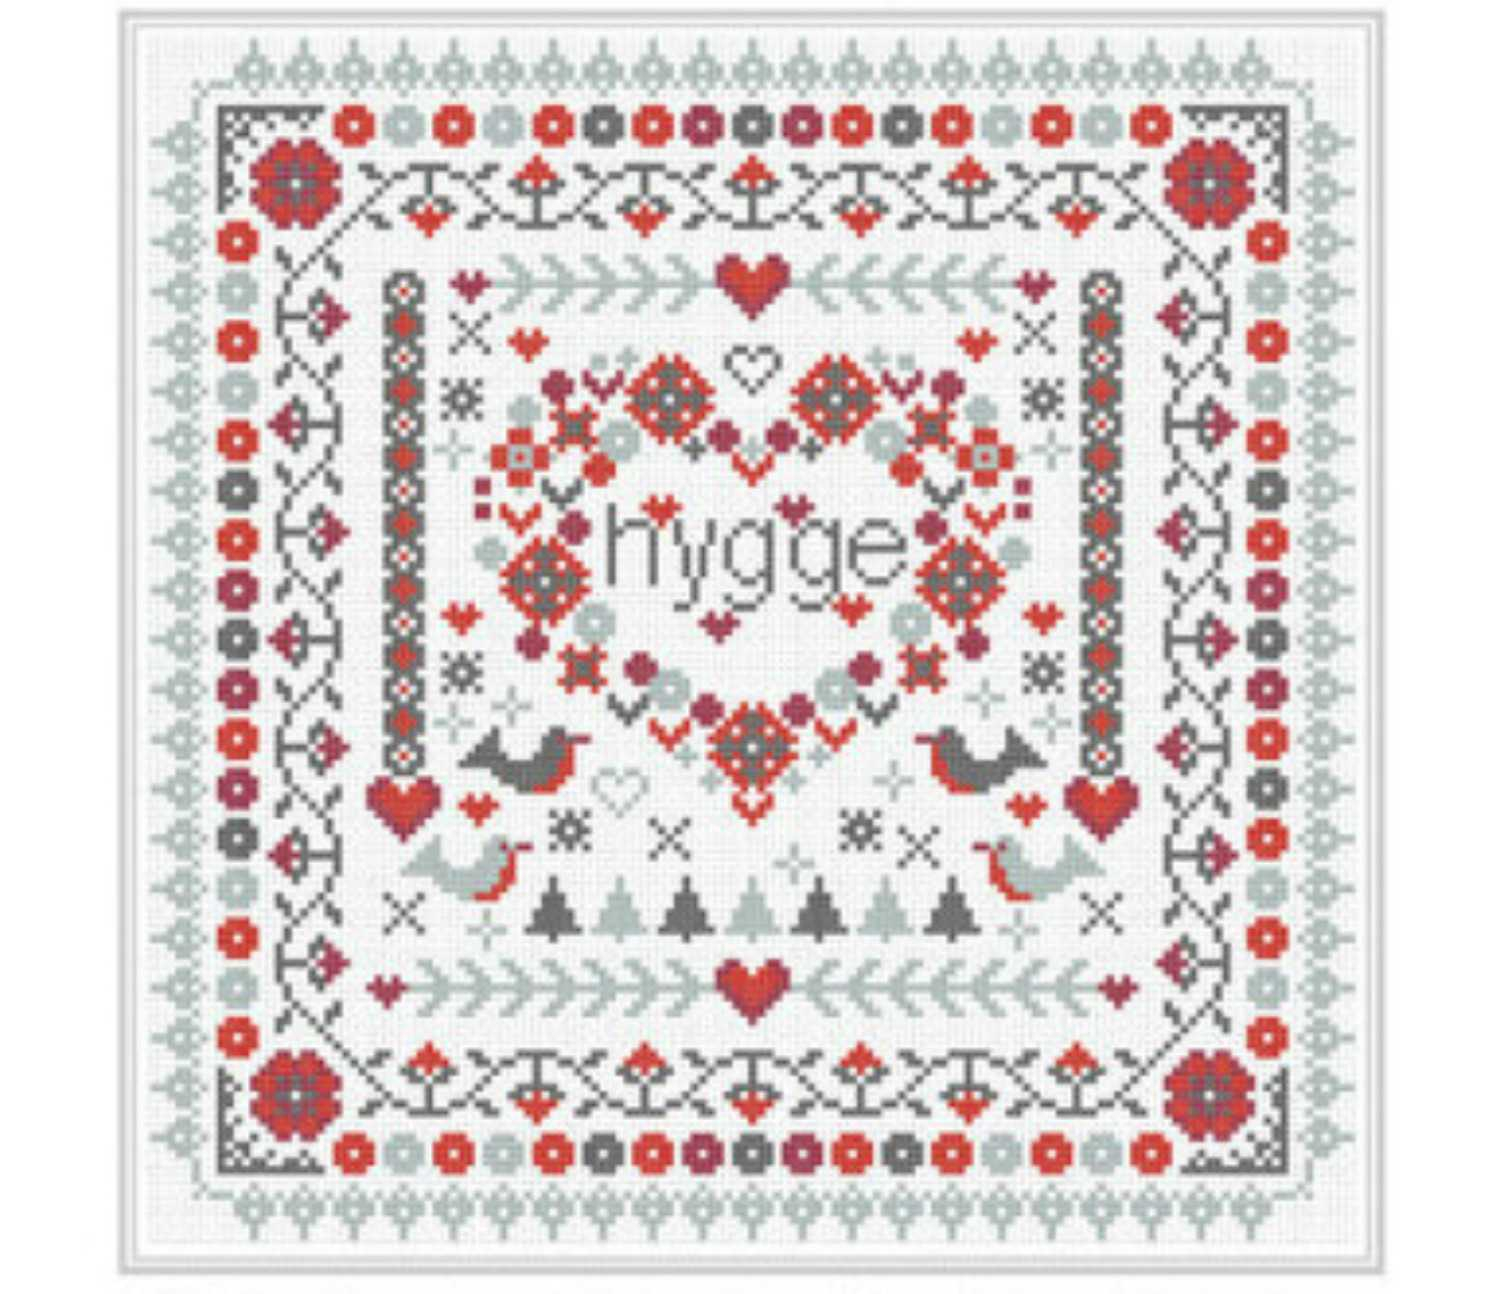 Scandinavian Embroidery Patterns 10 Hygge Inspired Cross Stitch Patterns